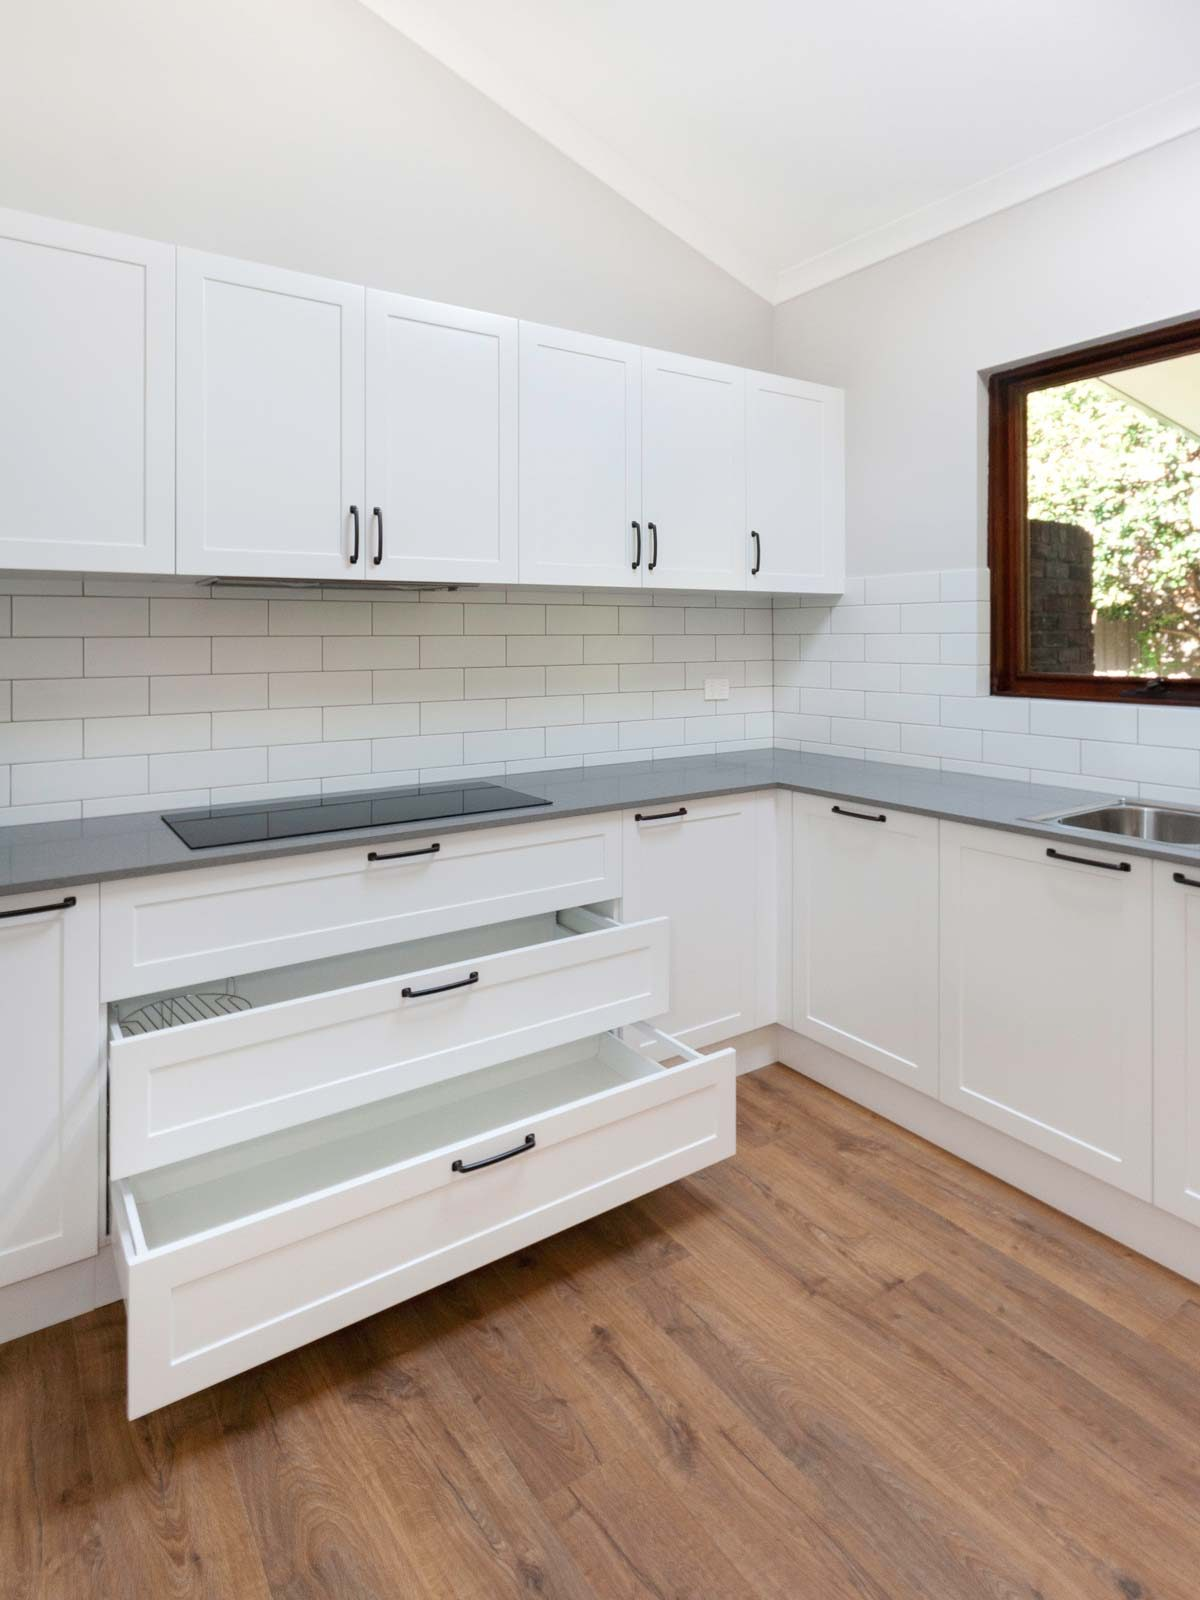 Caesarstone Oyster home renovation Sydney Castle Hill Reno Pack kitchen wide drawers